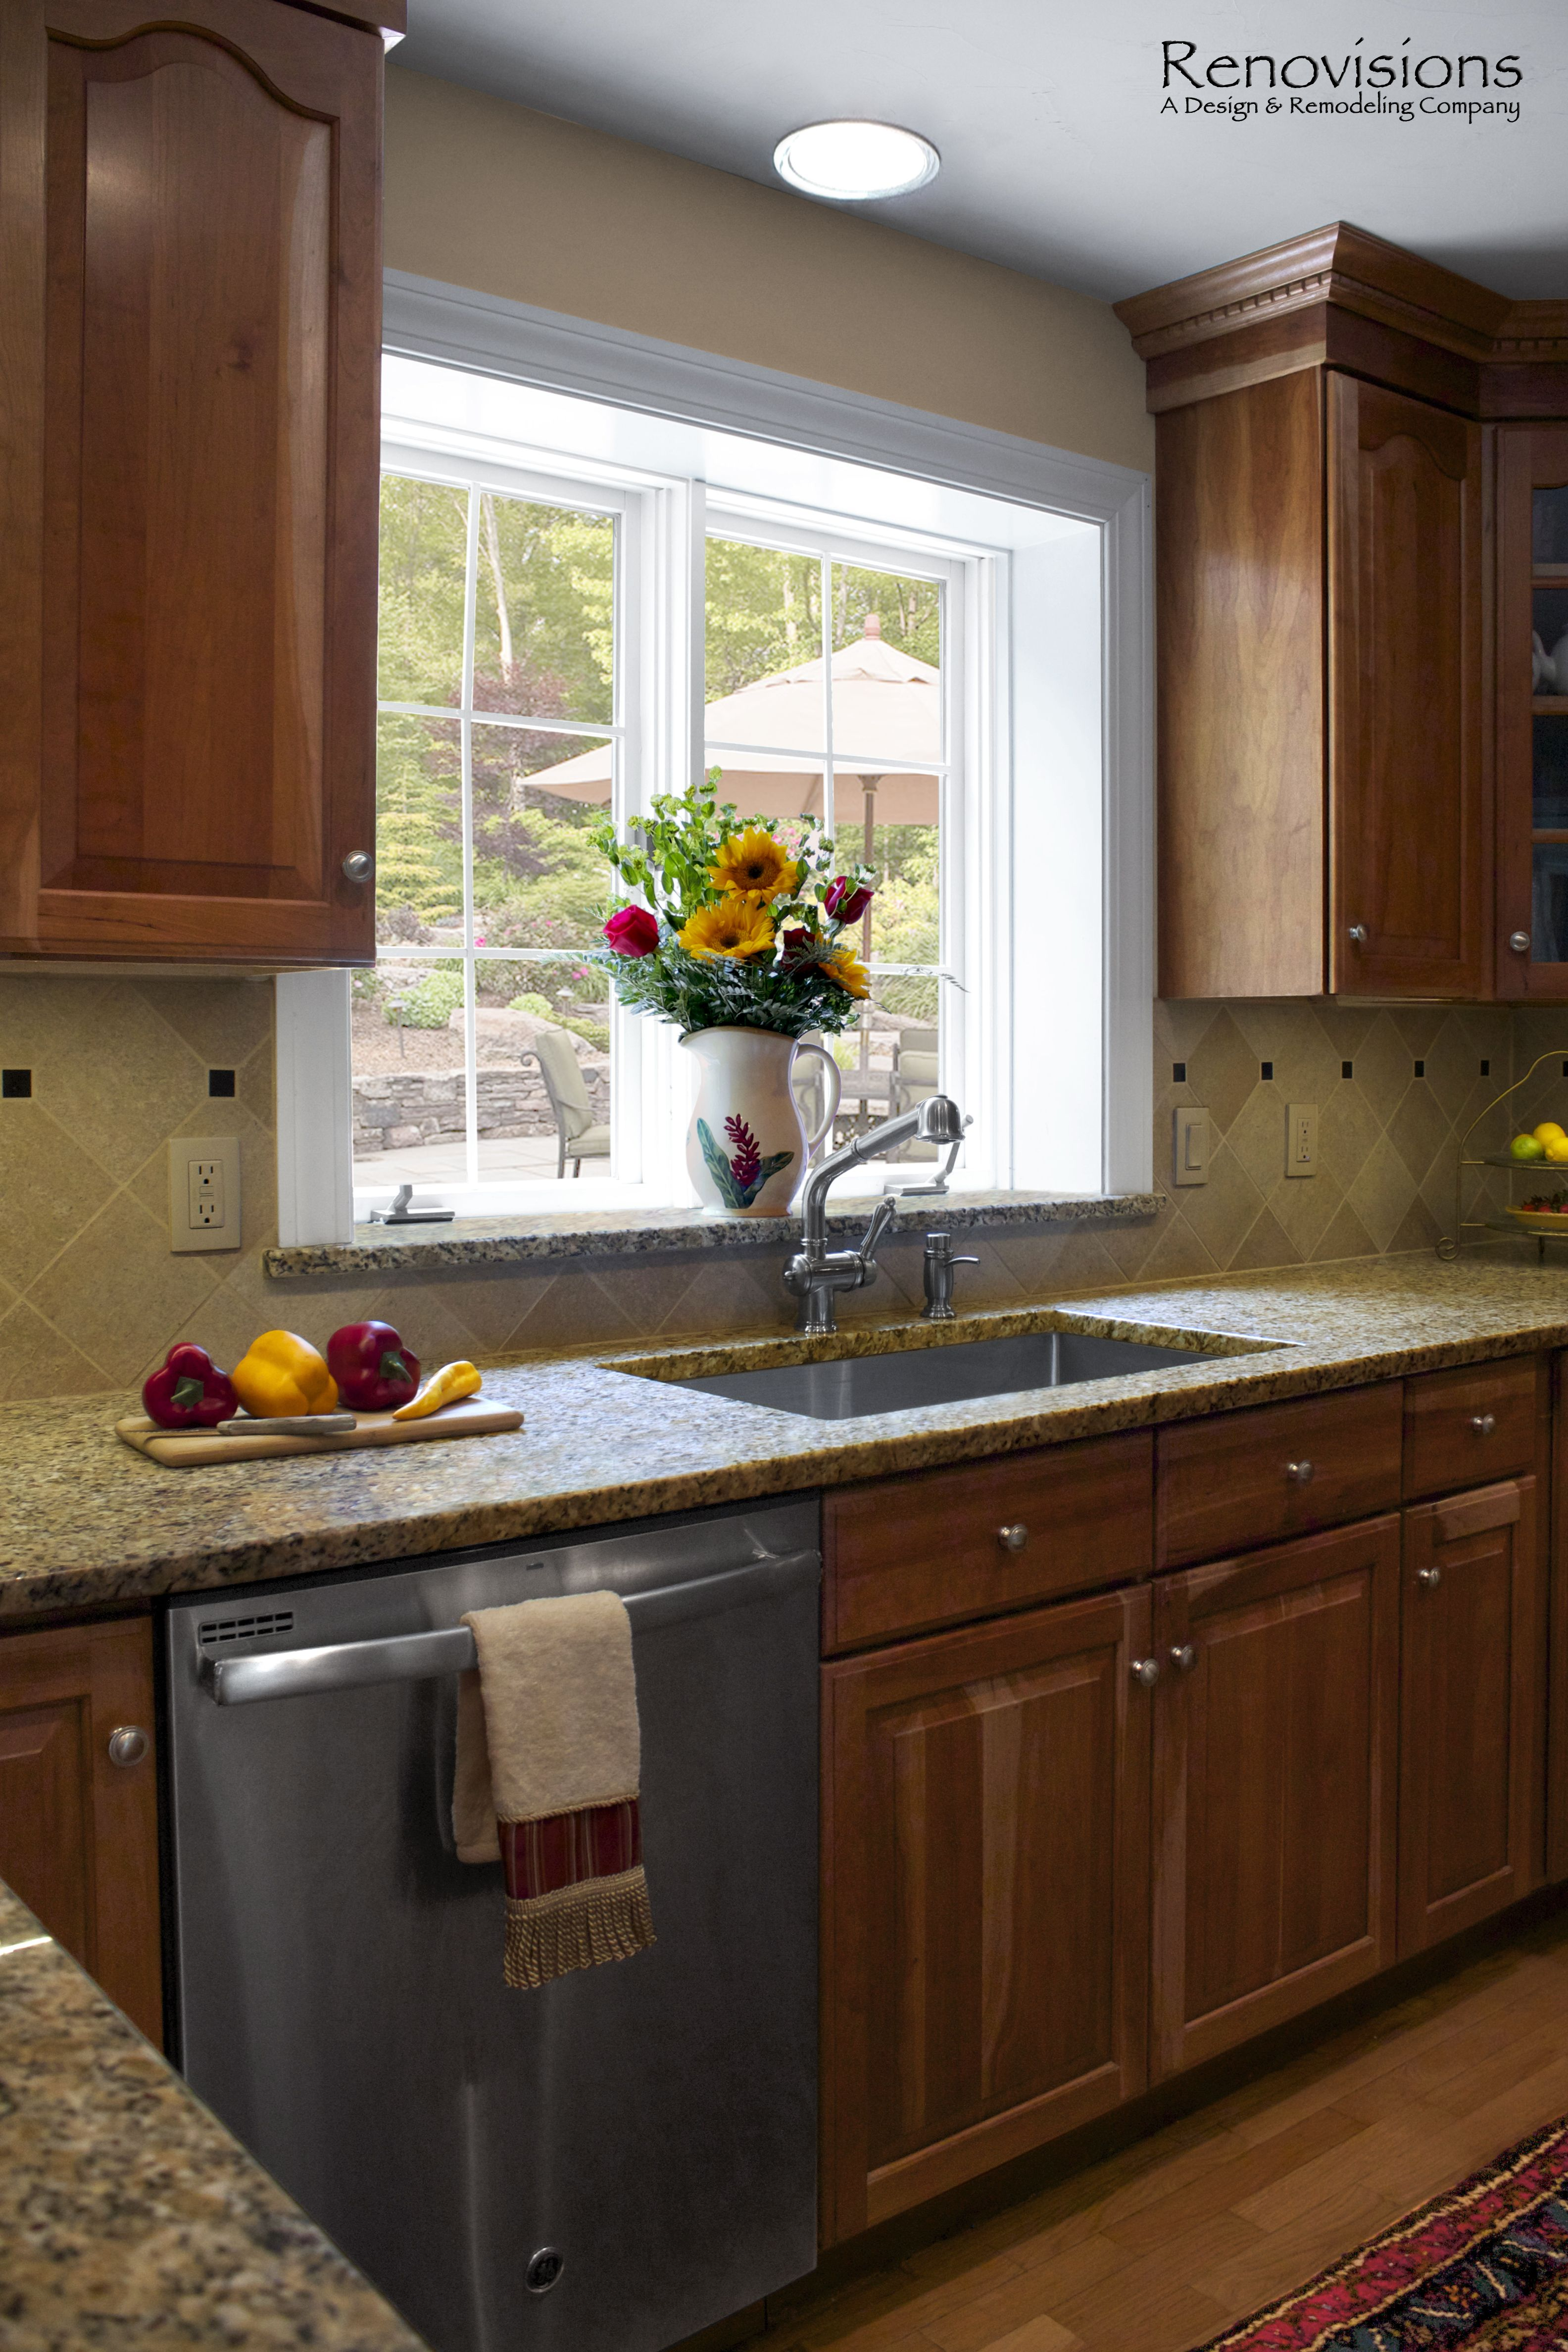 Kitchen Remodel By Renovisions Decorative Tan And Black Tile